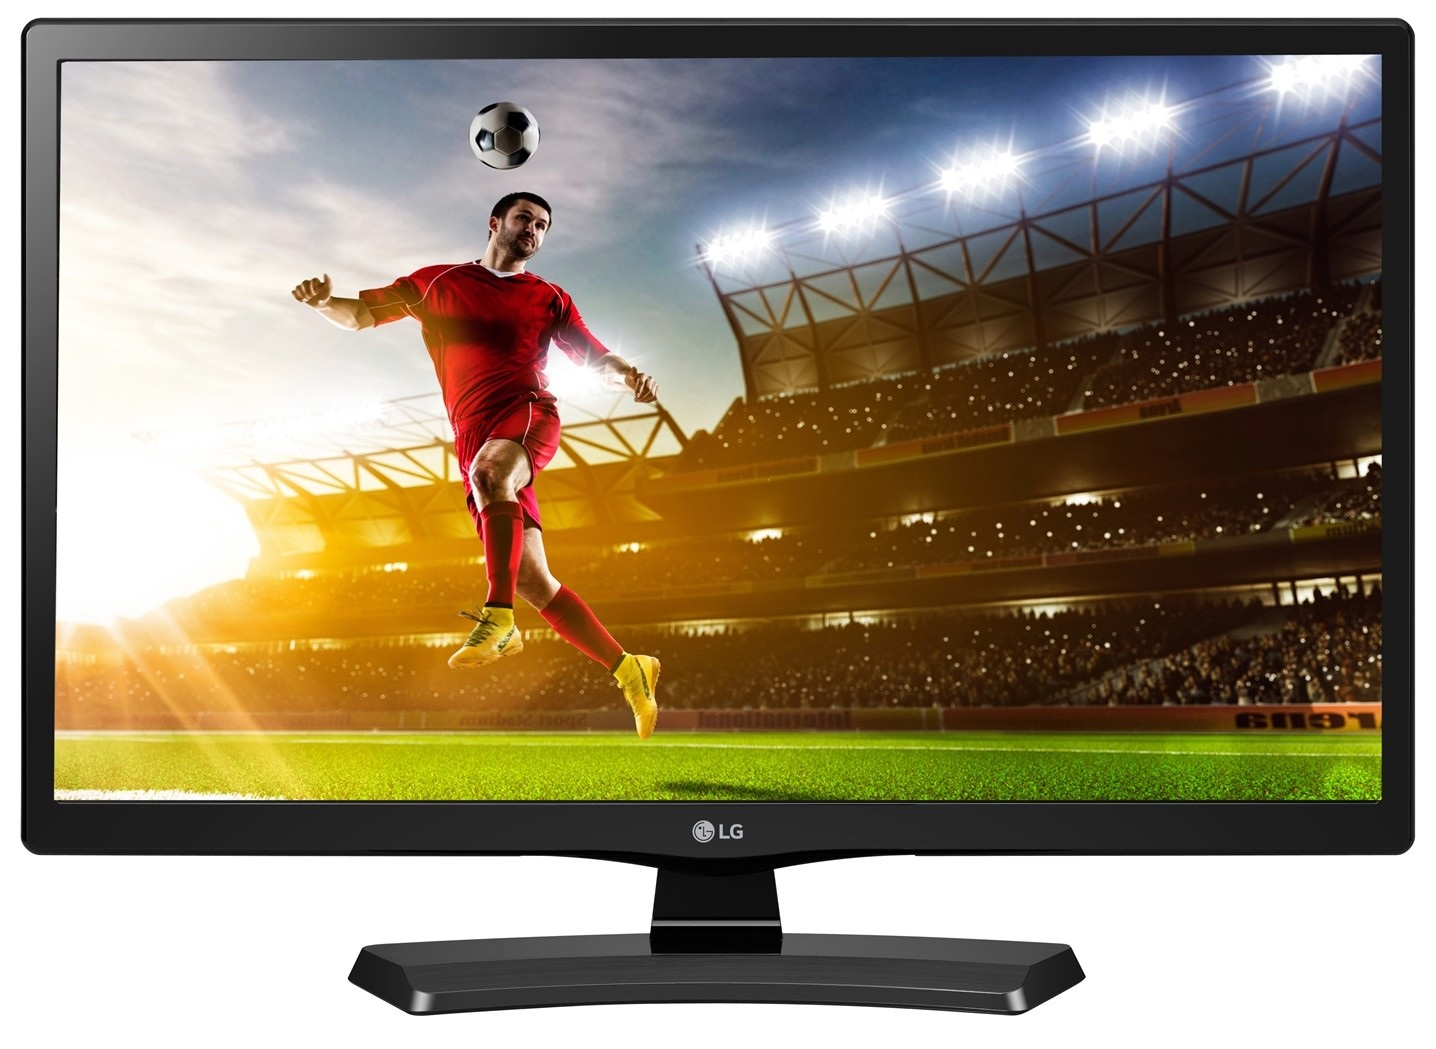 Monitors with TV Tuner (Samsung)